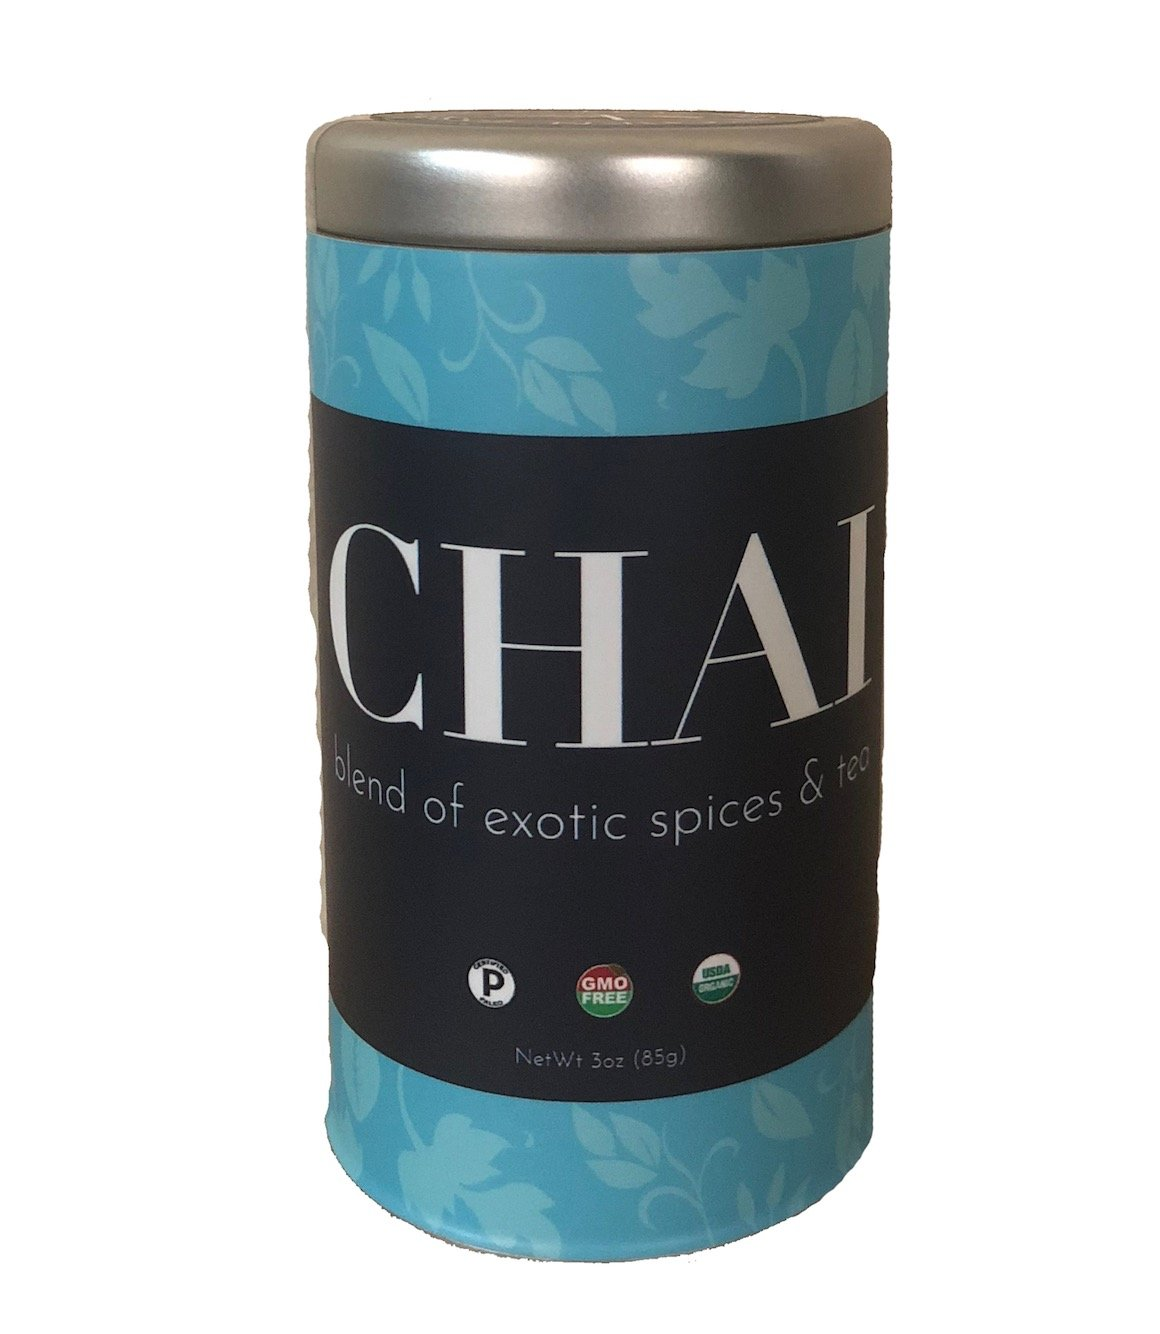 Mothers Kitchen Essentials Organic Chai Blend of Exotic Spices & Tea